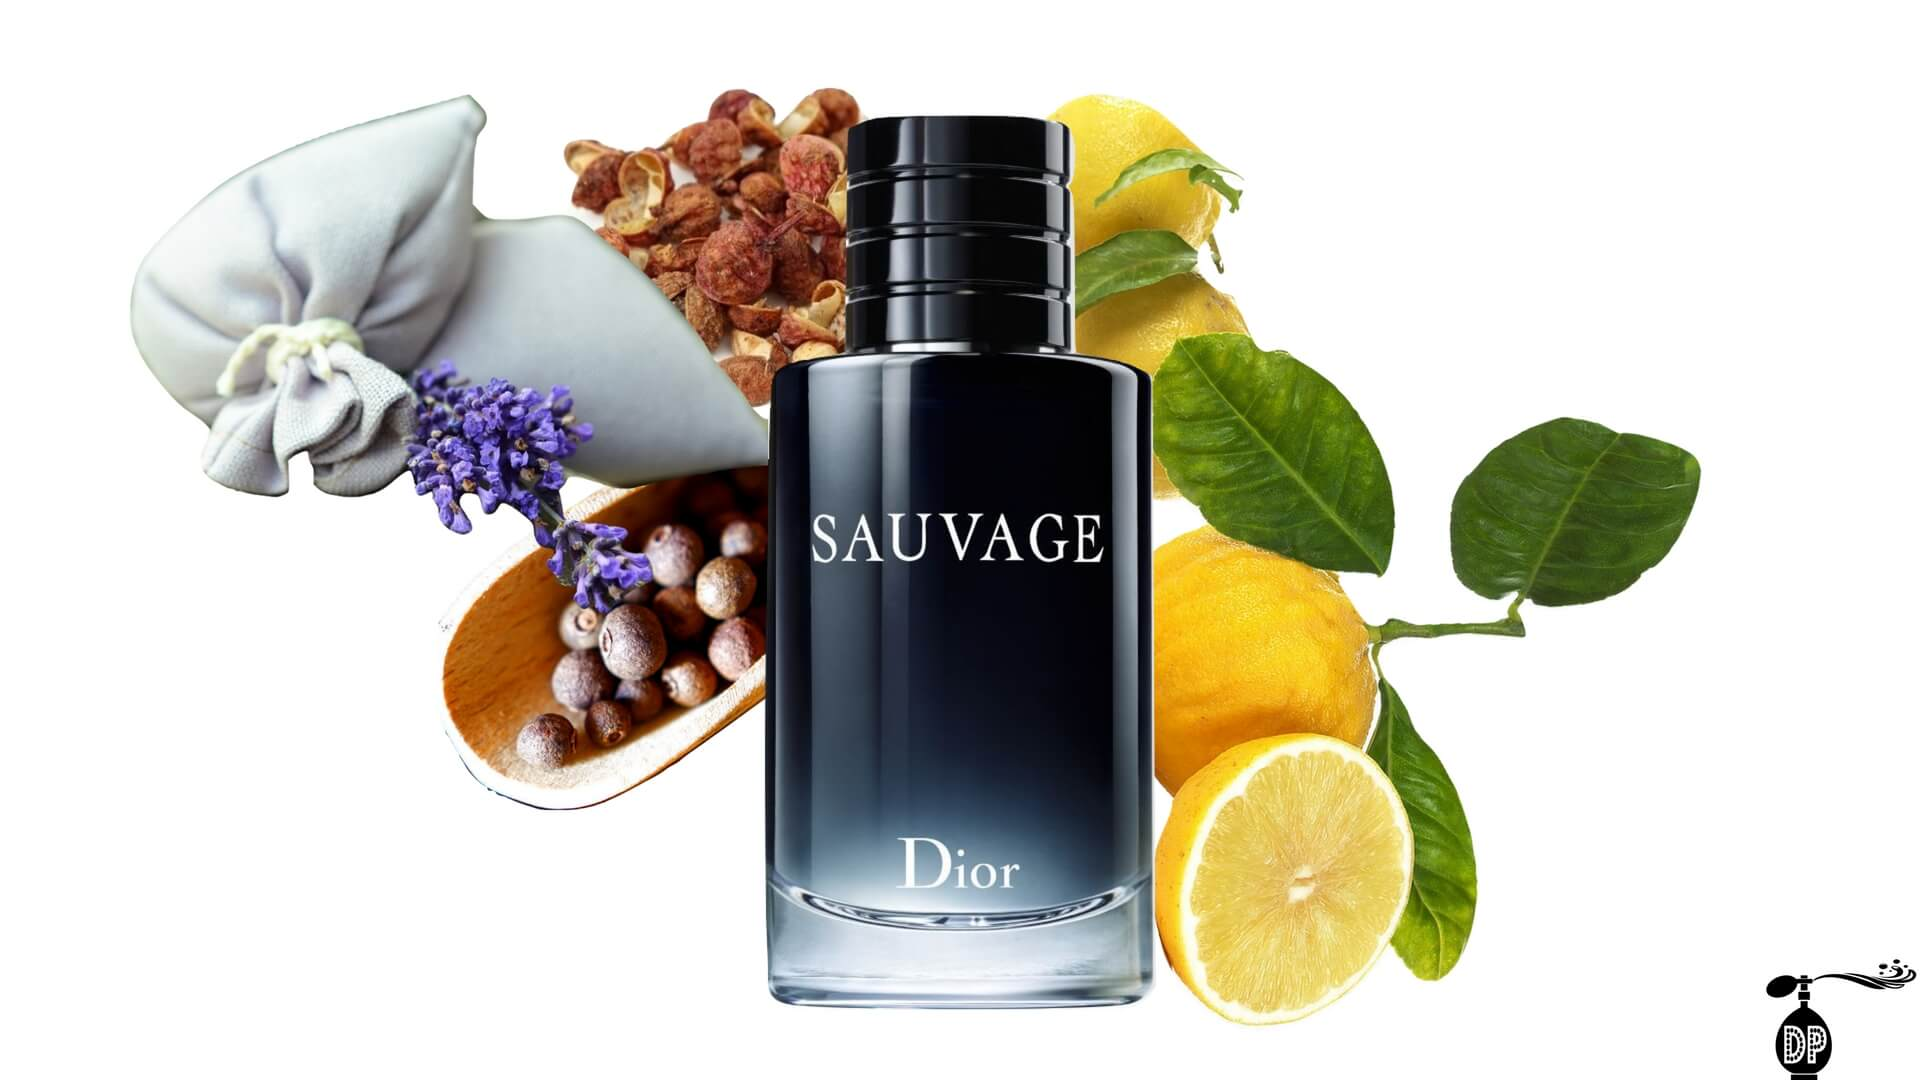 Sauvage di Christian Dior: un intramontabile best-seller